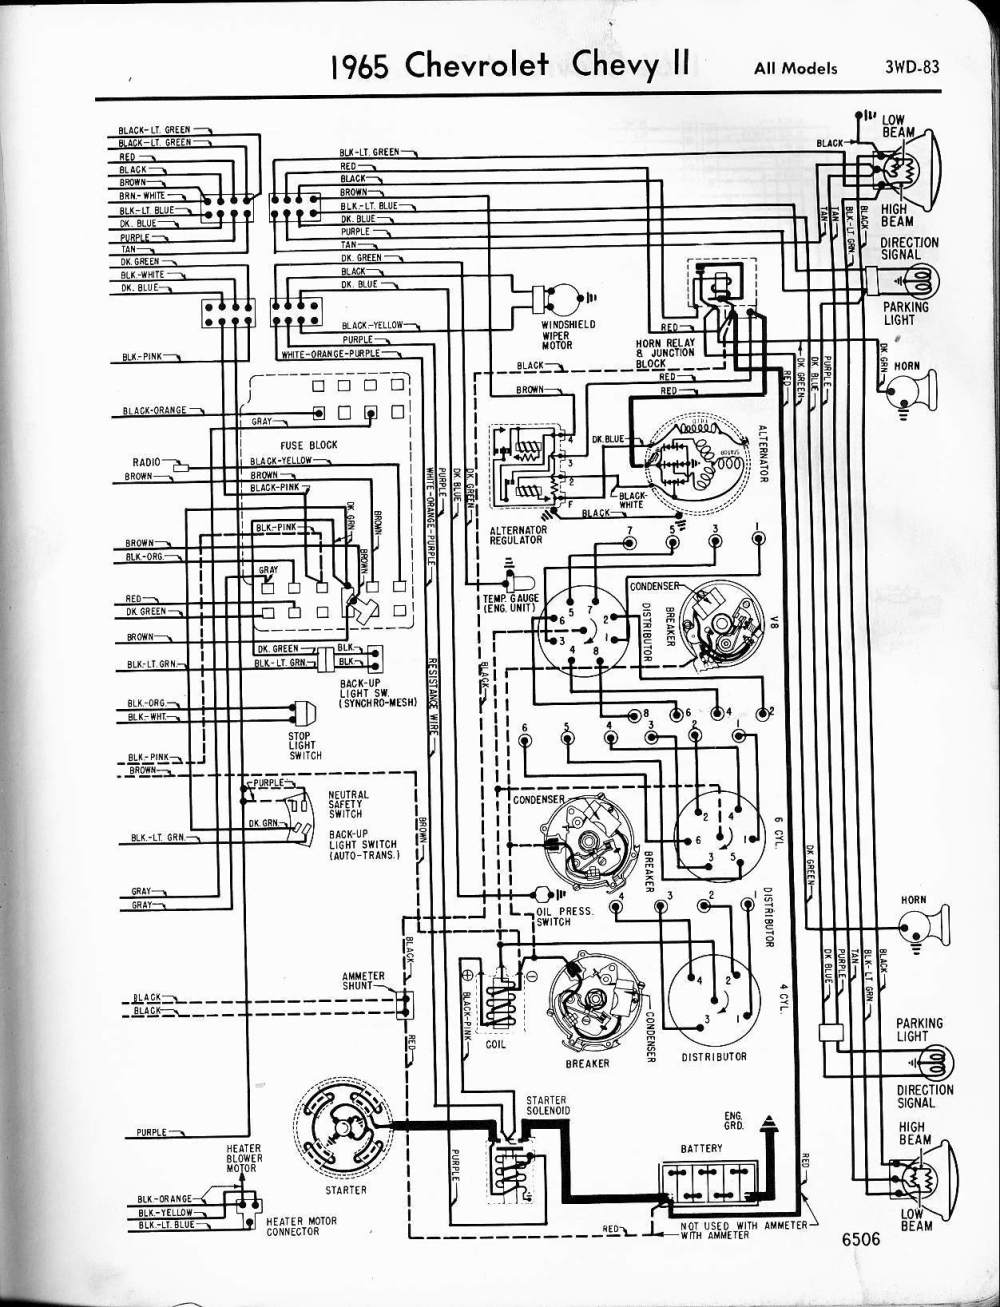 1965 Chevy Ii Wiring Diagram - Wiring Diagram